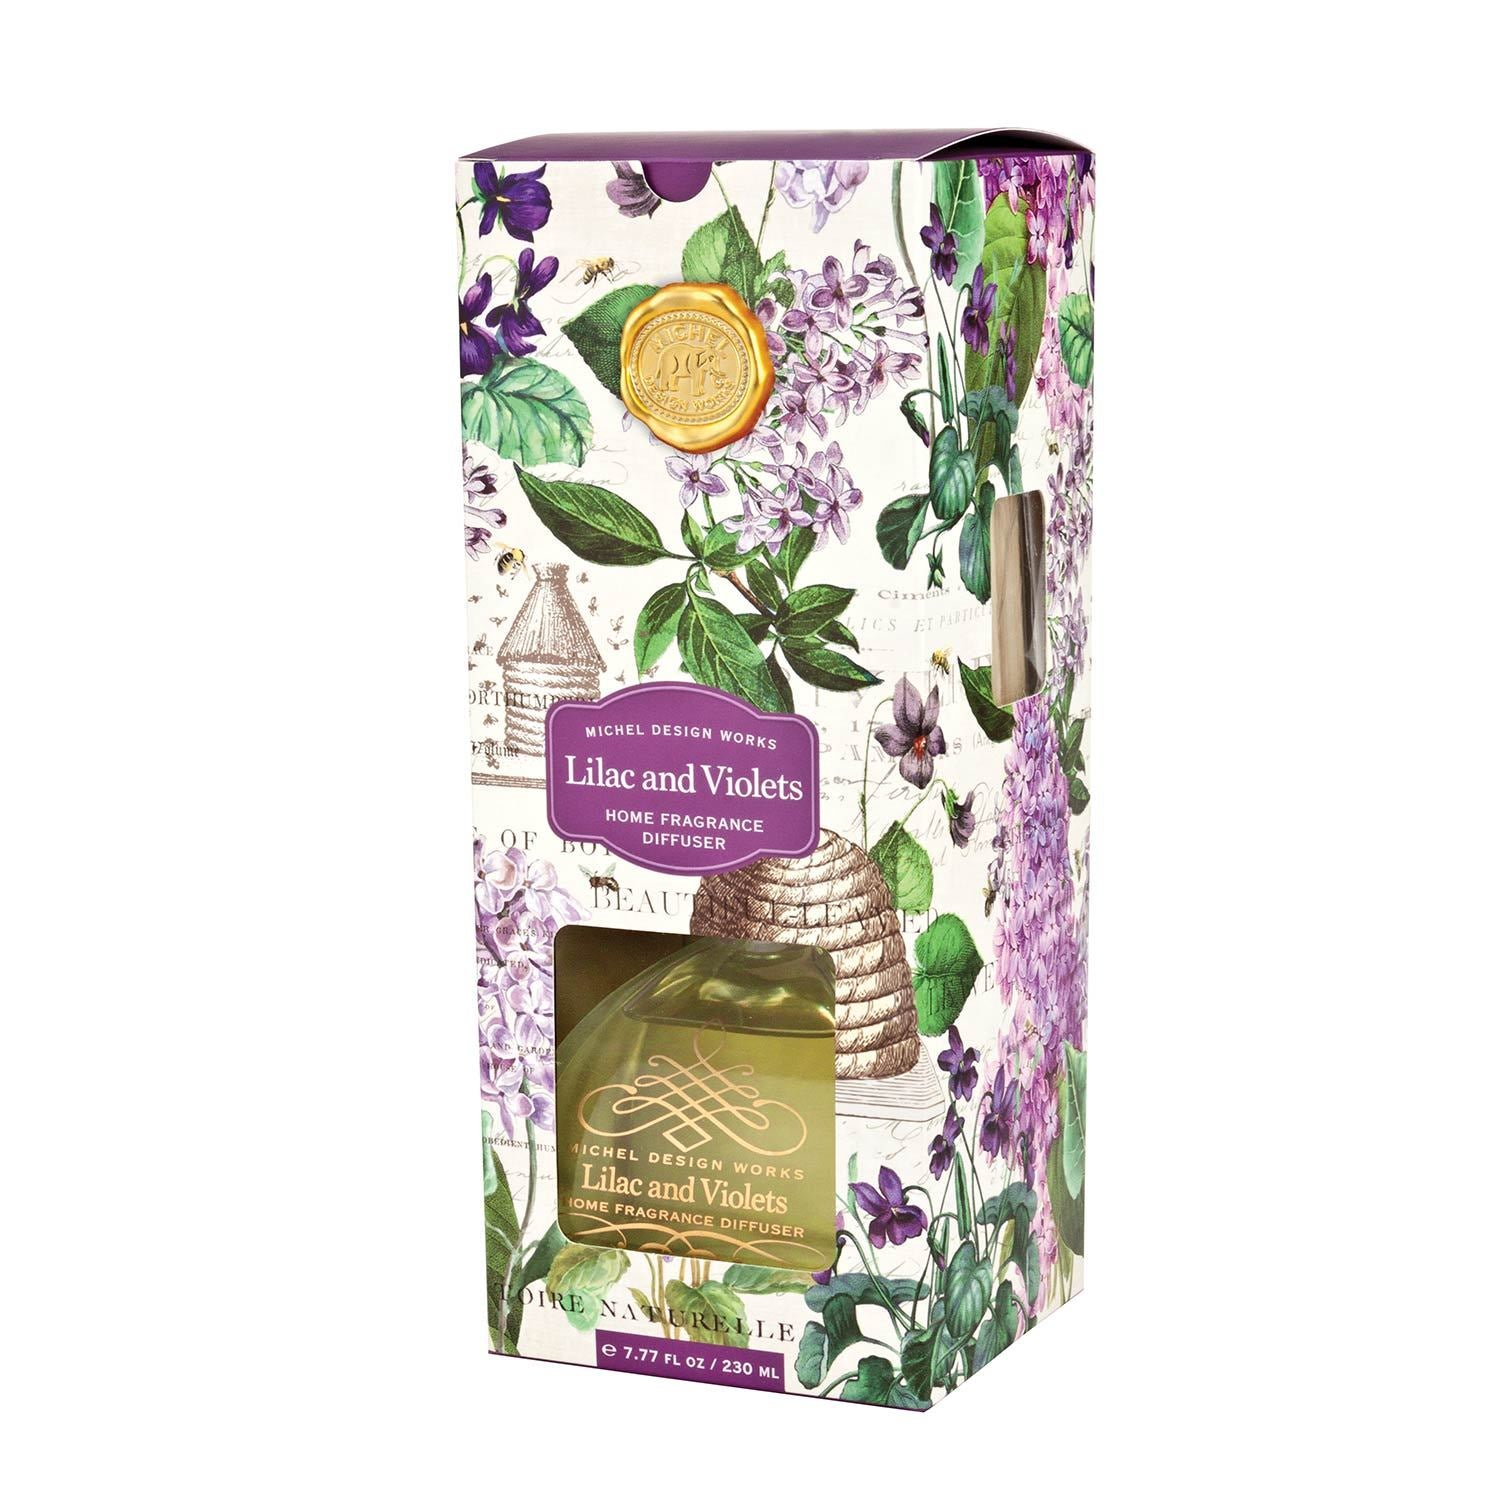 Lilac and Violets Home Fragrance Diffuser